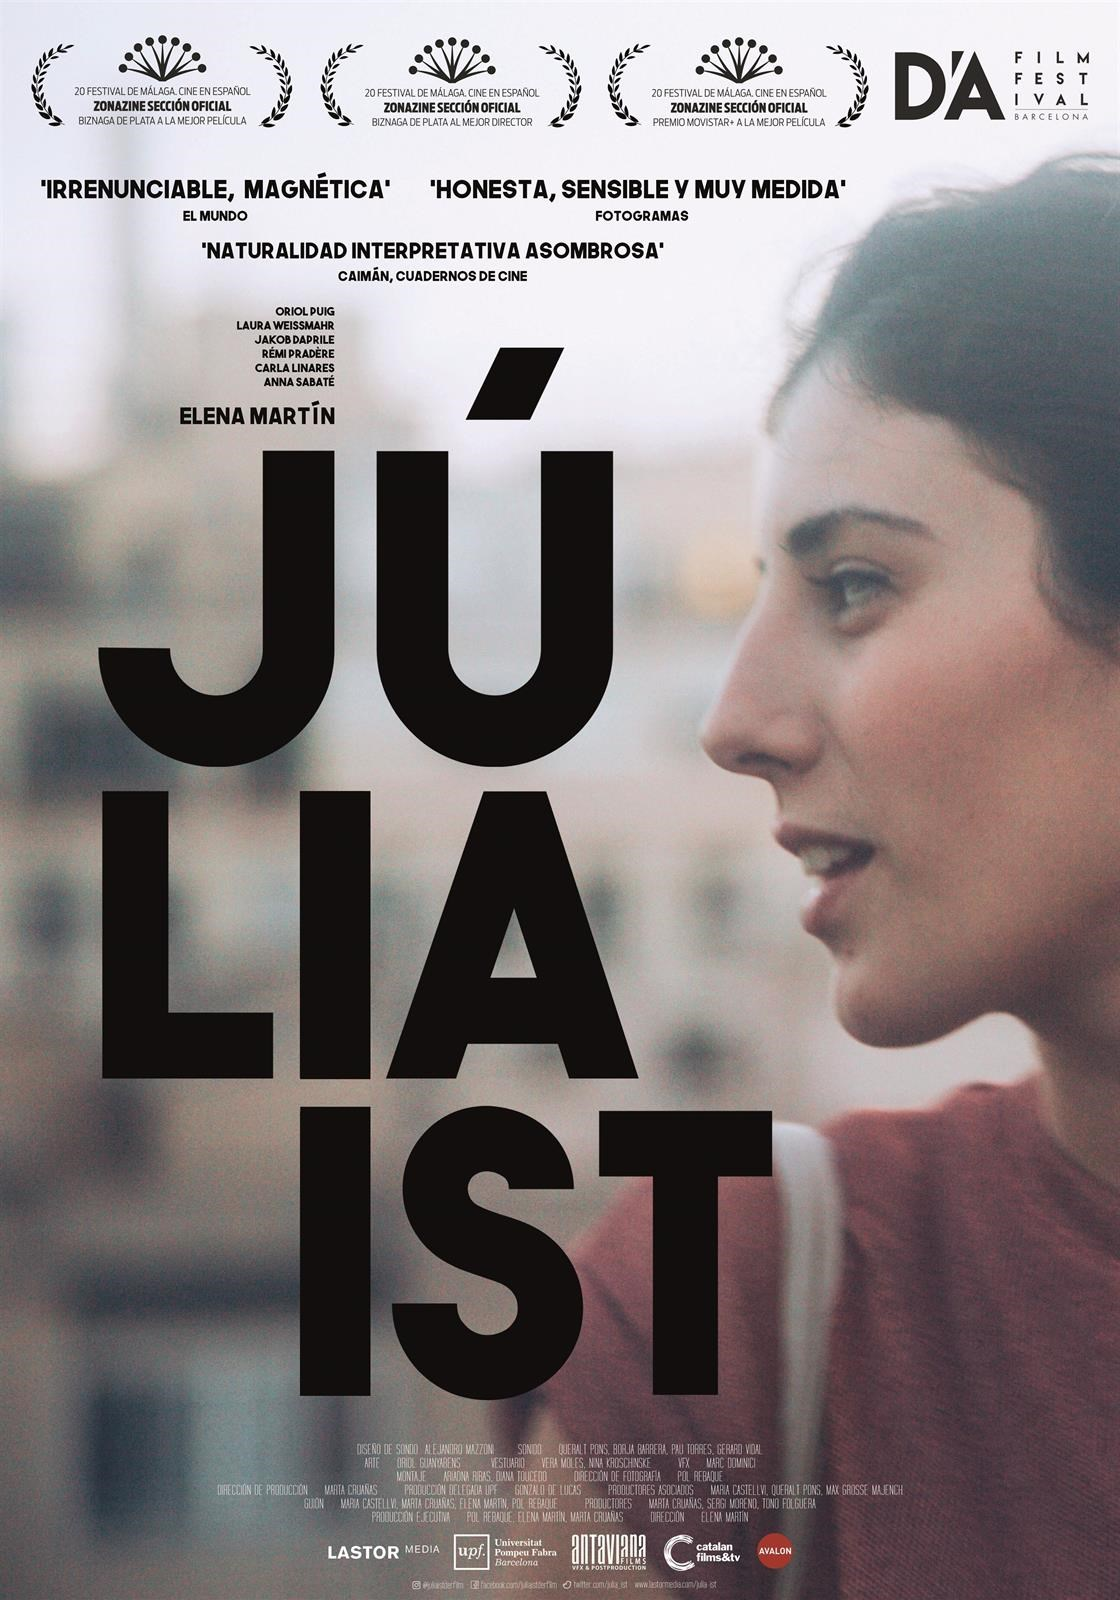 Júlia Ist - Pompeu Fabra University Thesis Film Project supported by Universität der Künste Berlin, Fundación SGAE and mentored by Mar Coll, Javier Rebollo, Elías Seminiani, Isaki Lacuesta and Gonzalo de Lucas. Filmed between Berlin and Barcelona, tells the story of Julia, a 21-year-old architecture student from Barcelona. Until she travels to Berlin for an Erasmus exchange, the future seemed to be clear for her. There she realizes that she doesn't know herself as well as she thought and also that she just doesn't know what she wants anymore. In the middle of this loneliness, she will have to face the challenge of setting up a life and fighting against the feeling of emptiness, in a completely new environment, in a city full of people, under the shine of another sun.